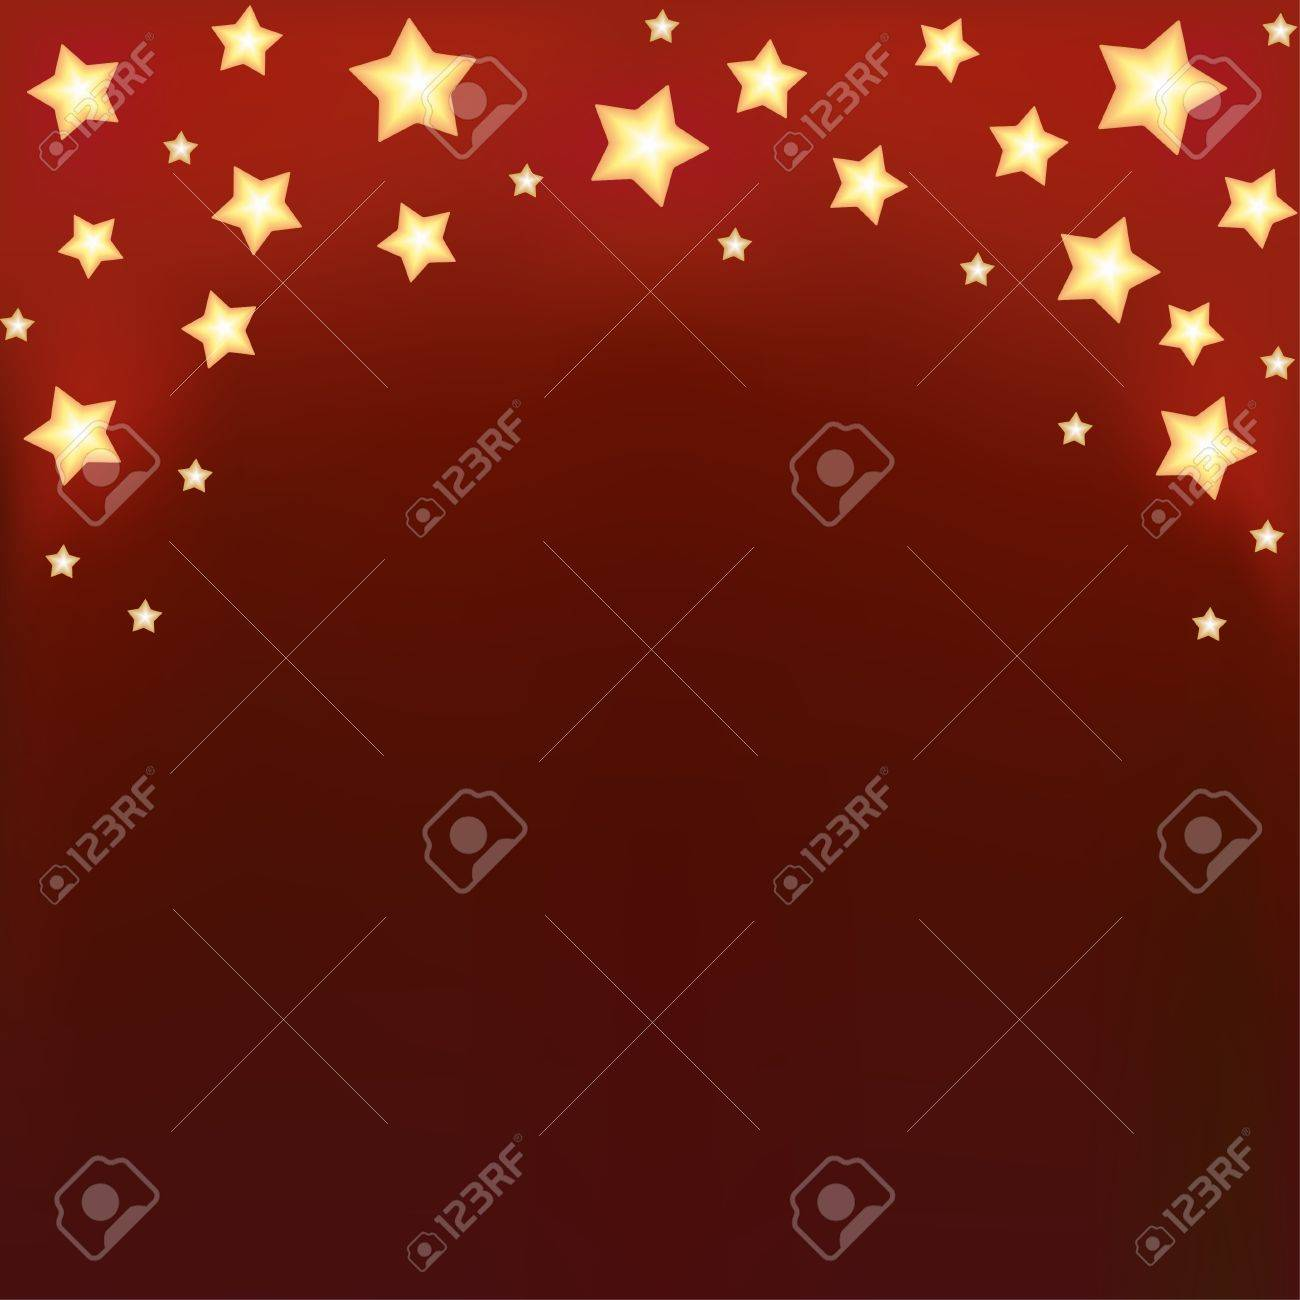 Background with shiny cartoon stars  Template design for card Stock Vector - 17503445